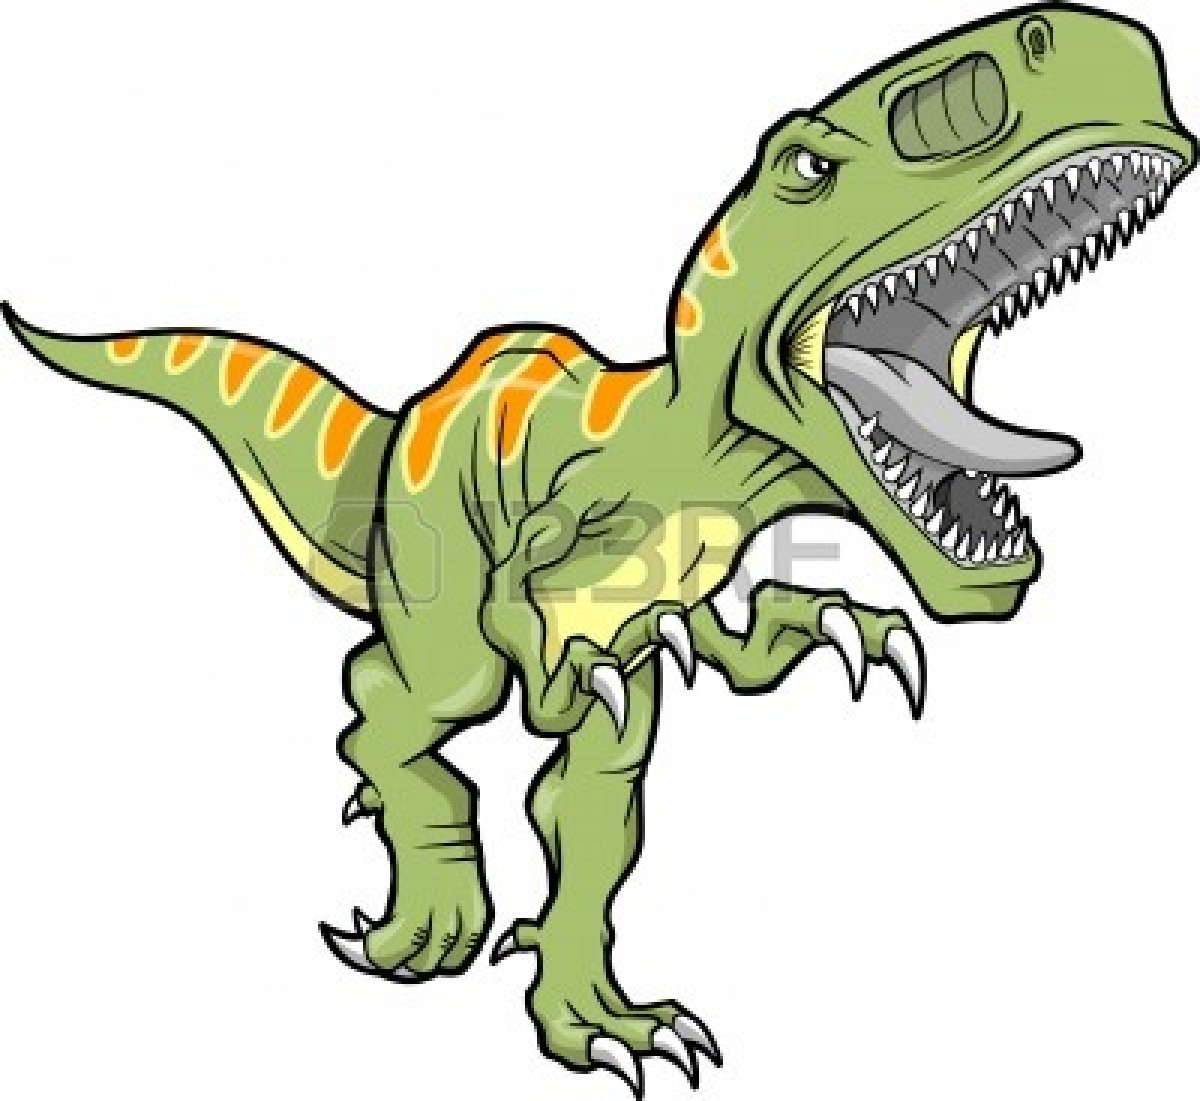 Tyrannosaurus Rex clipart #7, Download drawings